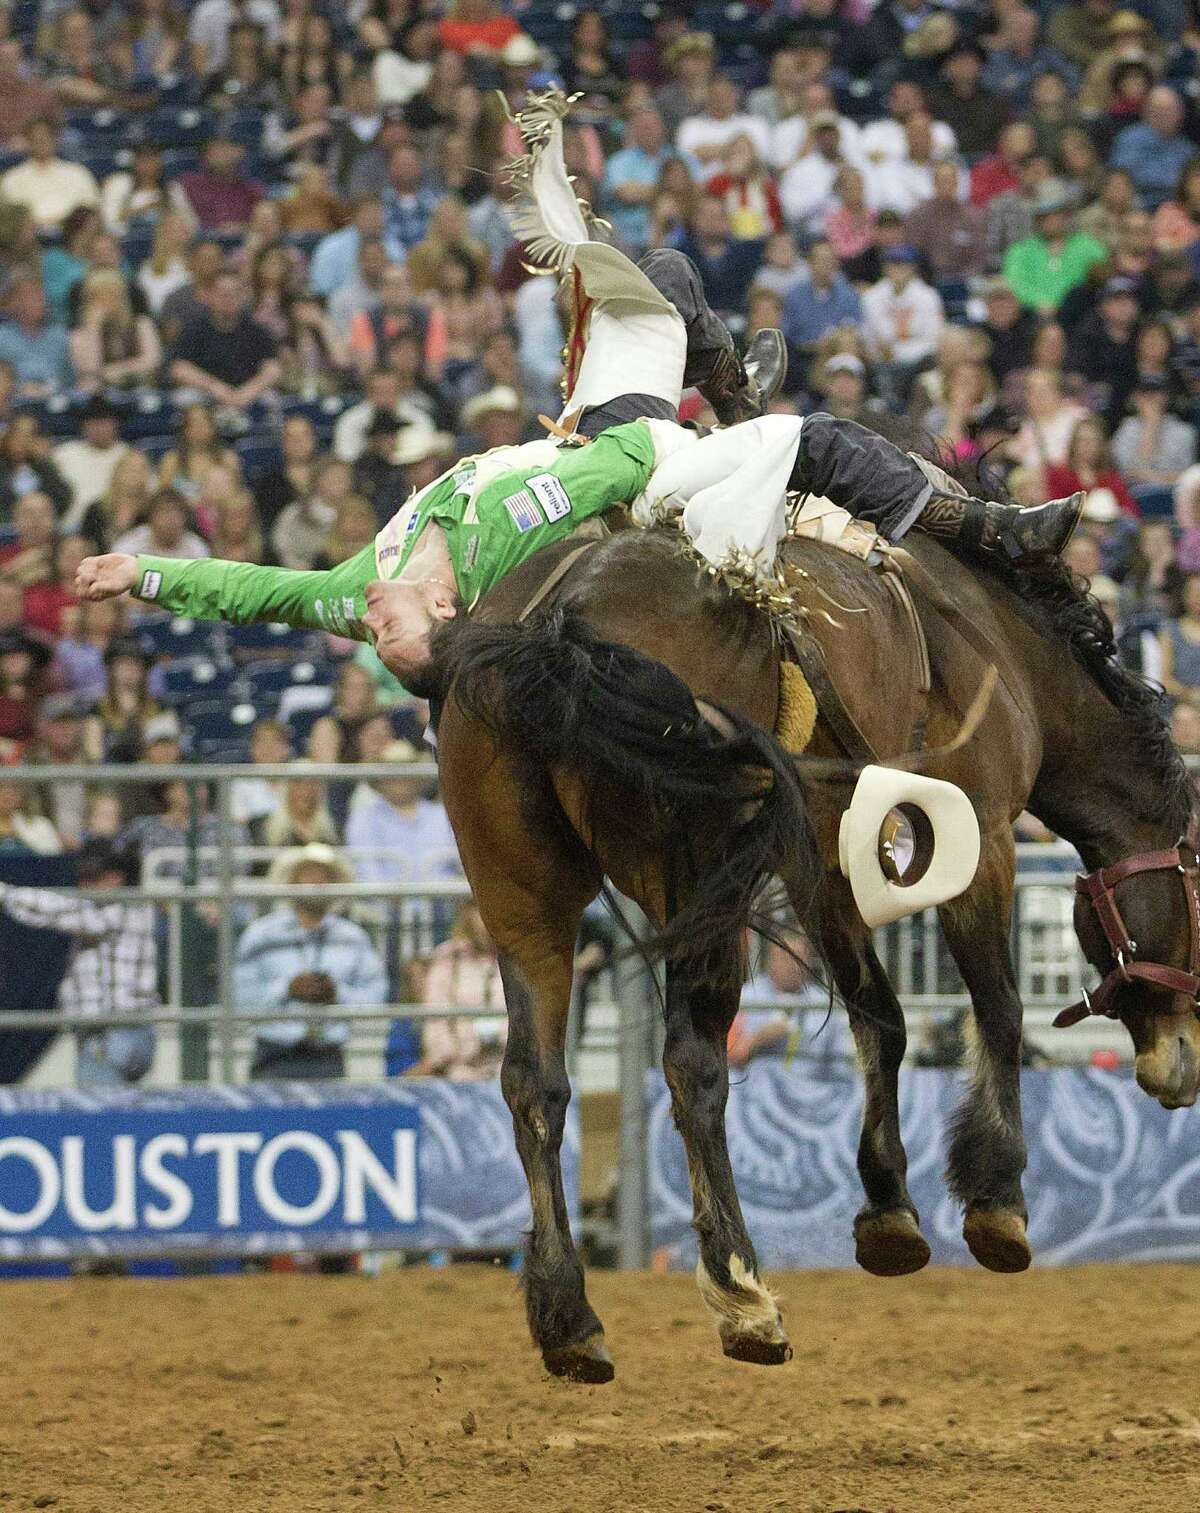 Clint Cannon hangs on during the RodeoHouston Super Shootout Bareback Riding event at Reliant Stadium Sunday, March 23, 2014, in Houston.